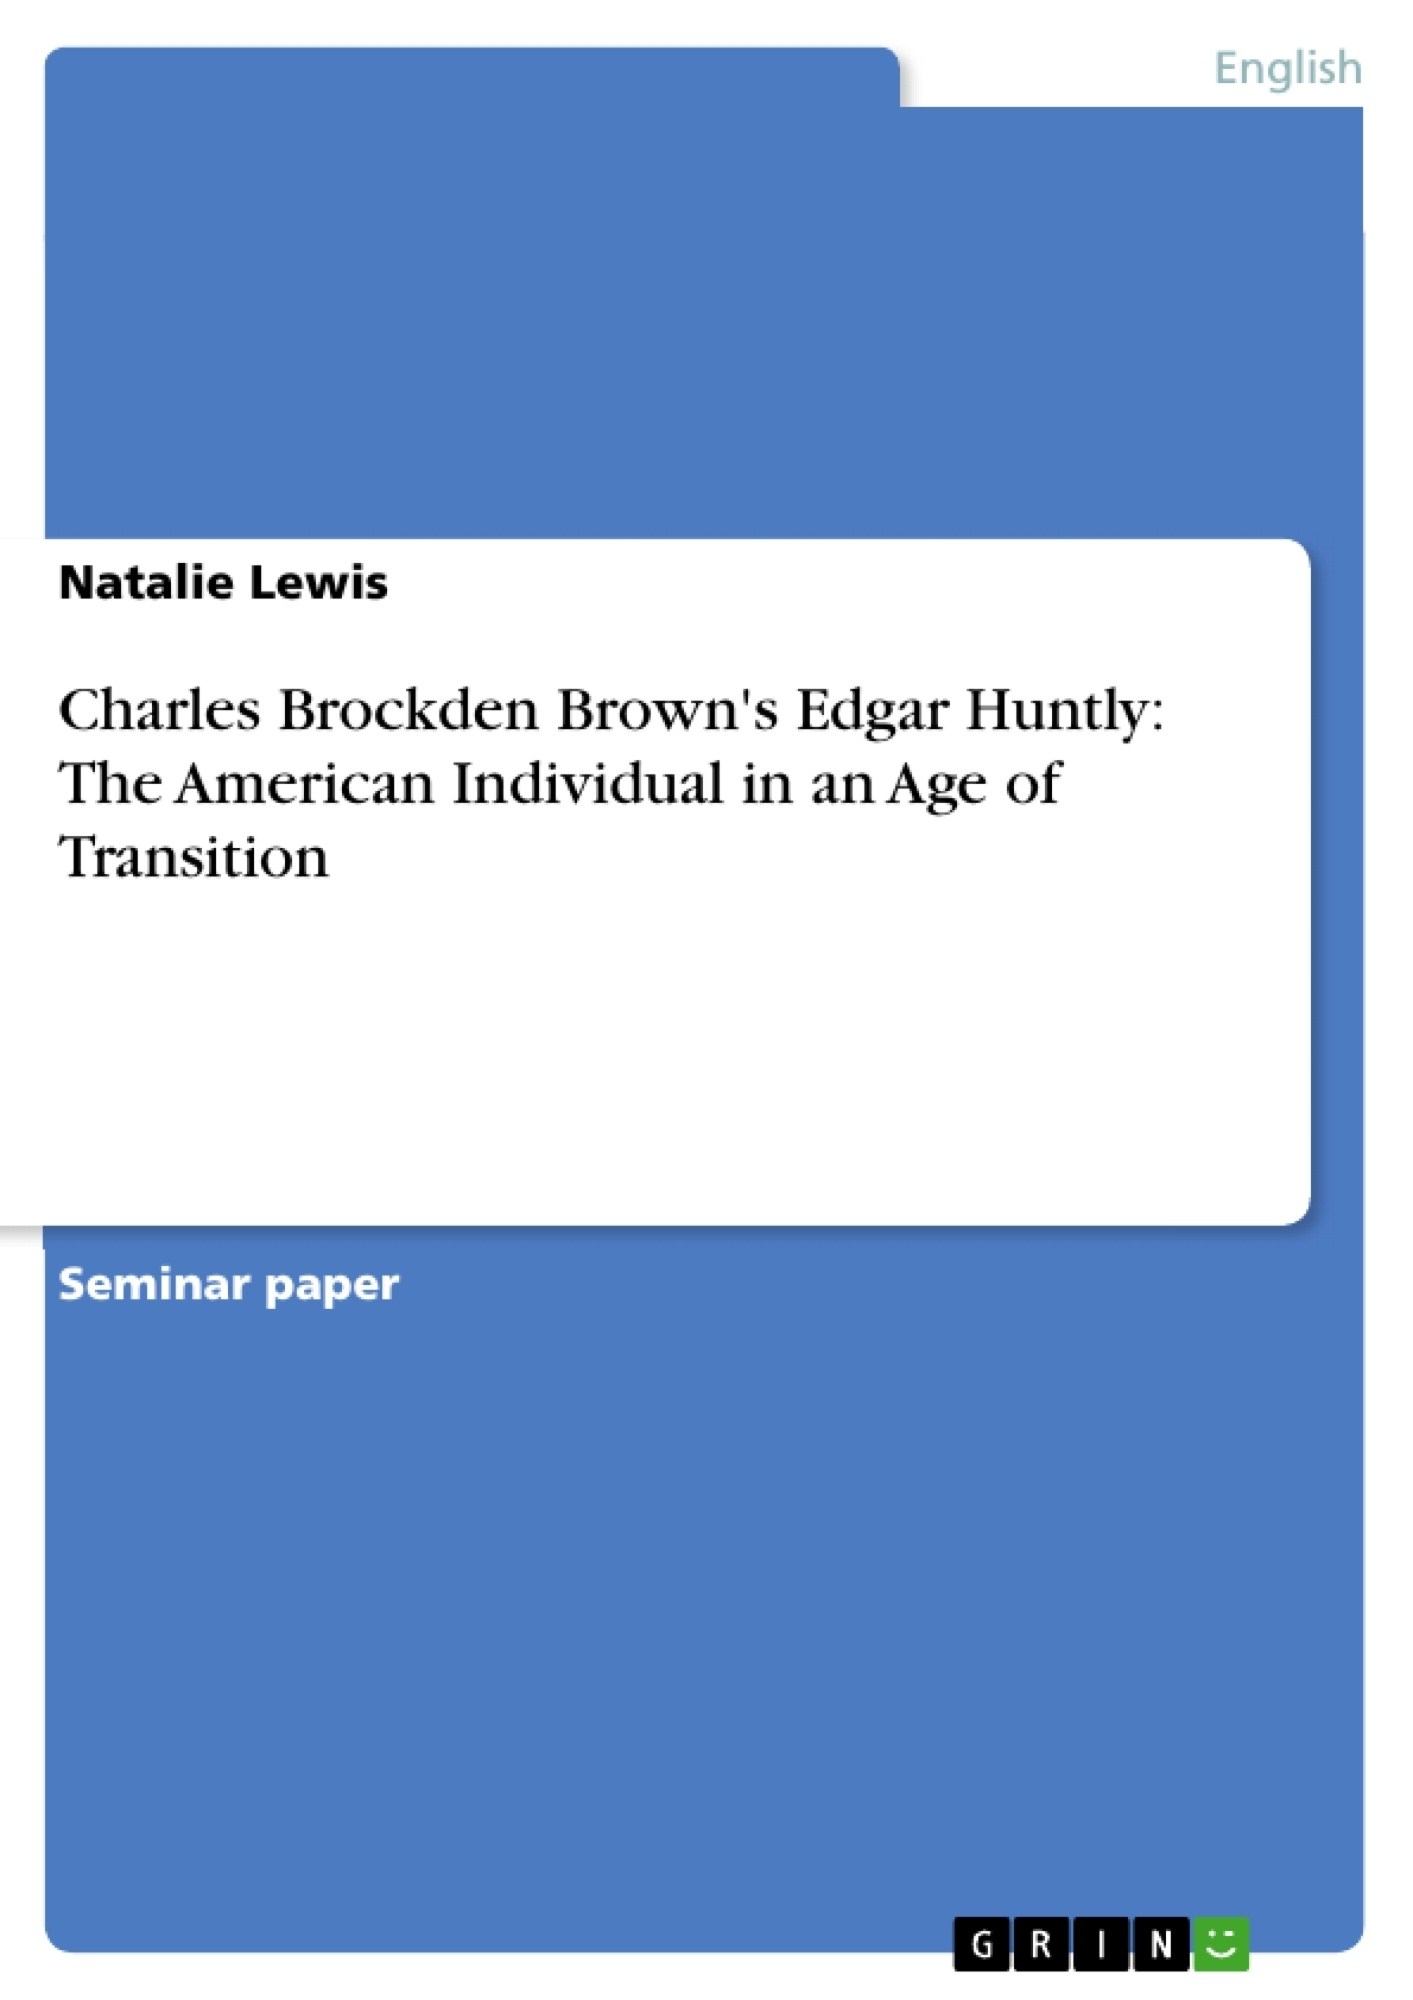 Title: Charles Brockden Brown's Edgar Huntly: The American Individual in an Age of Transition